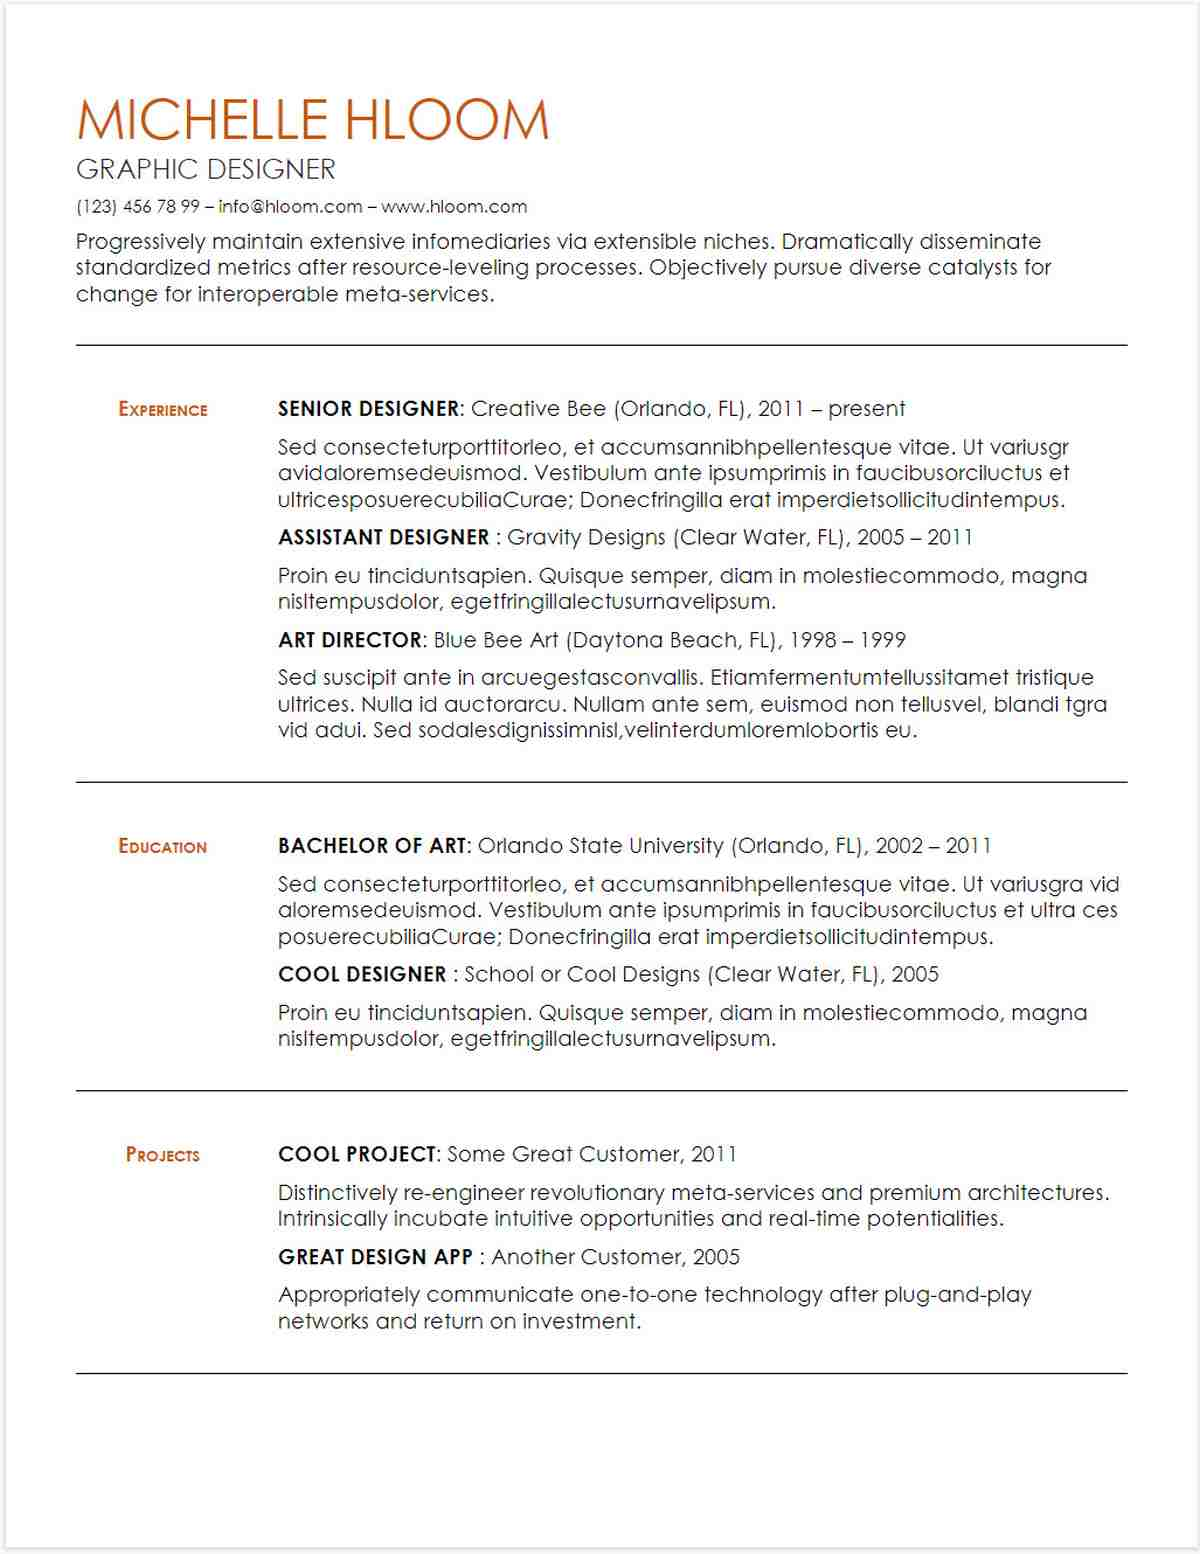 google docs resume templates downloadable pdfs best template substantial gdoc free Resume Google Docs Best Resume Template